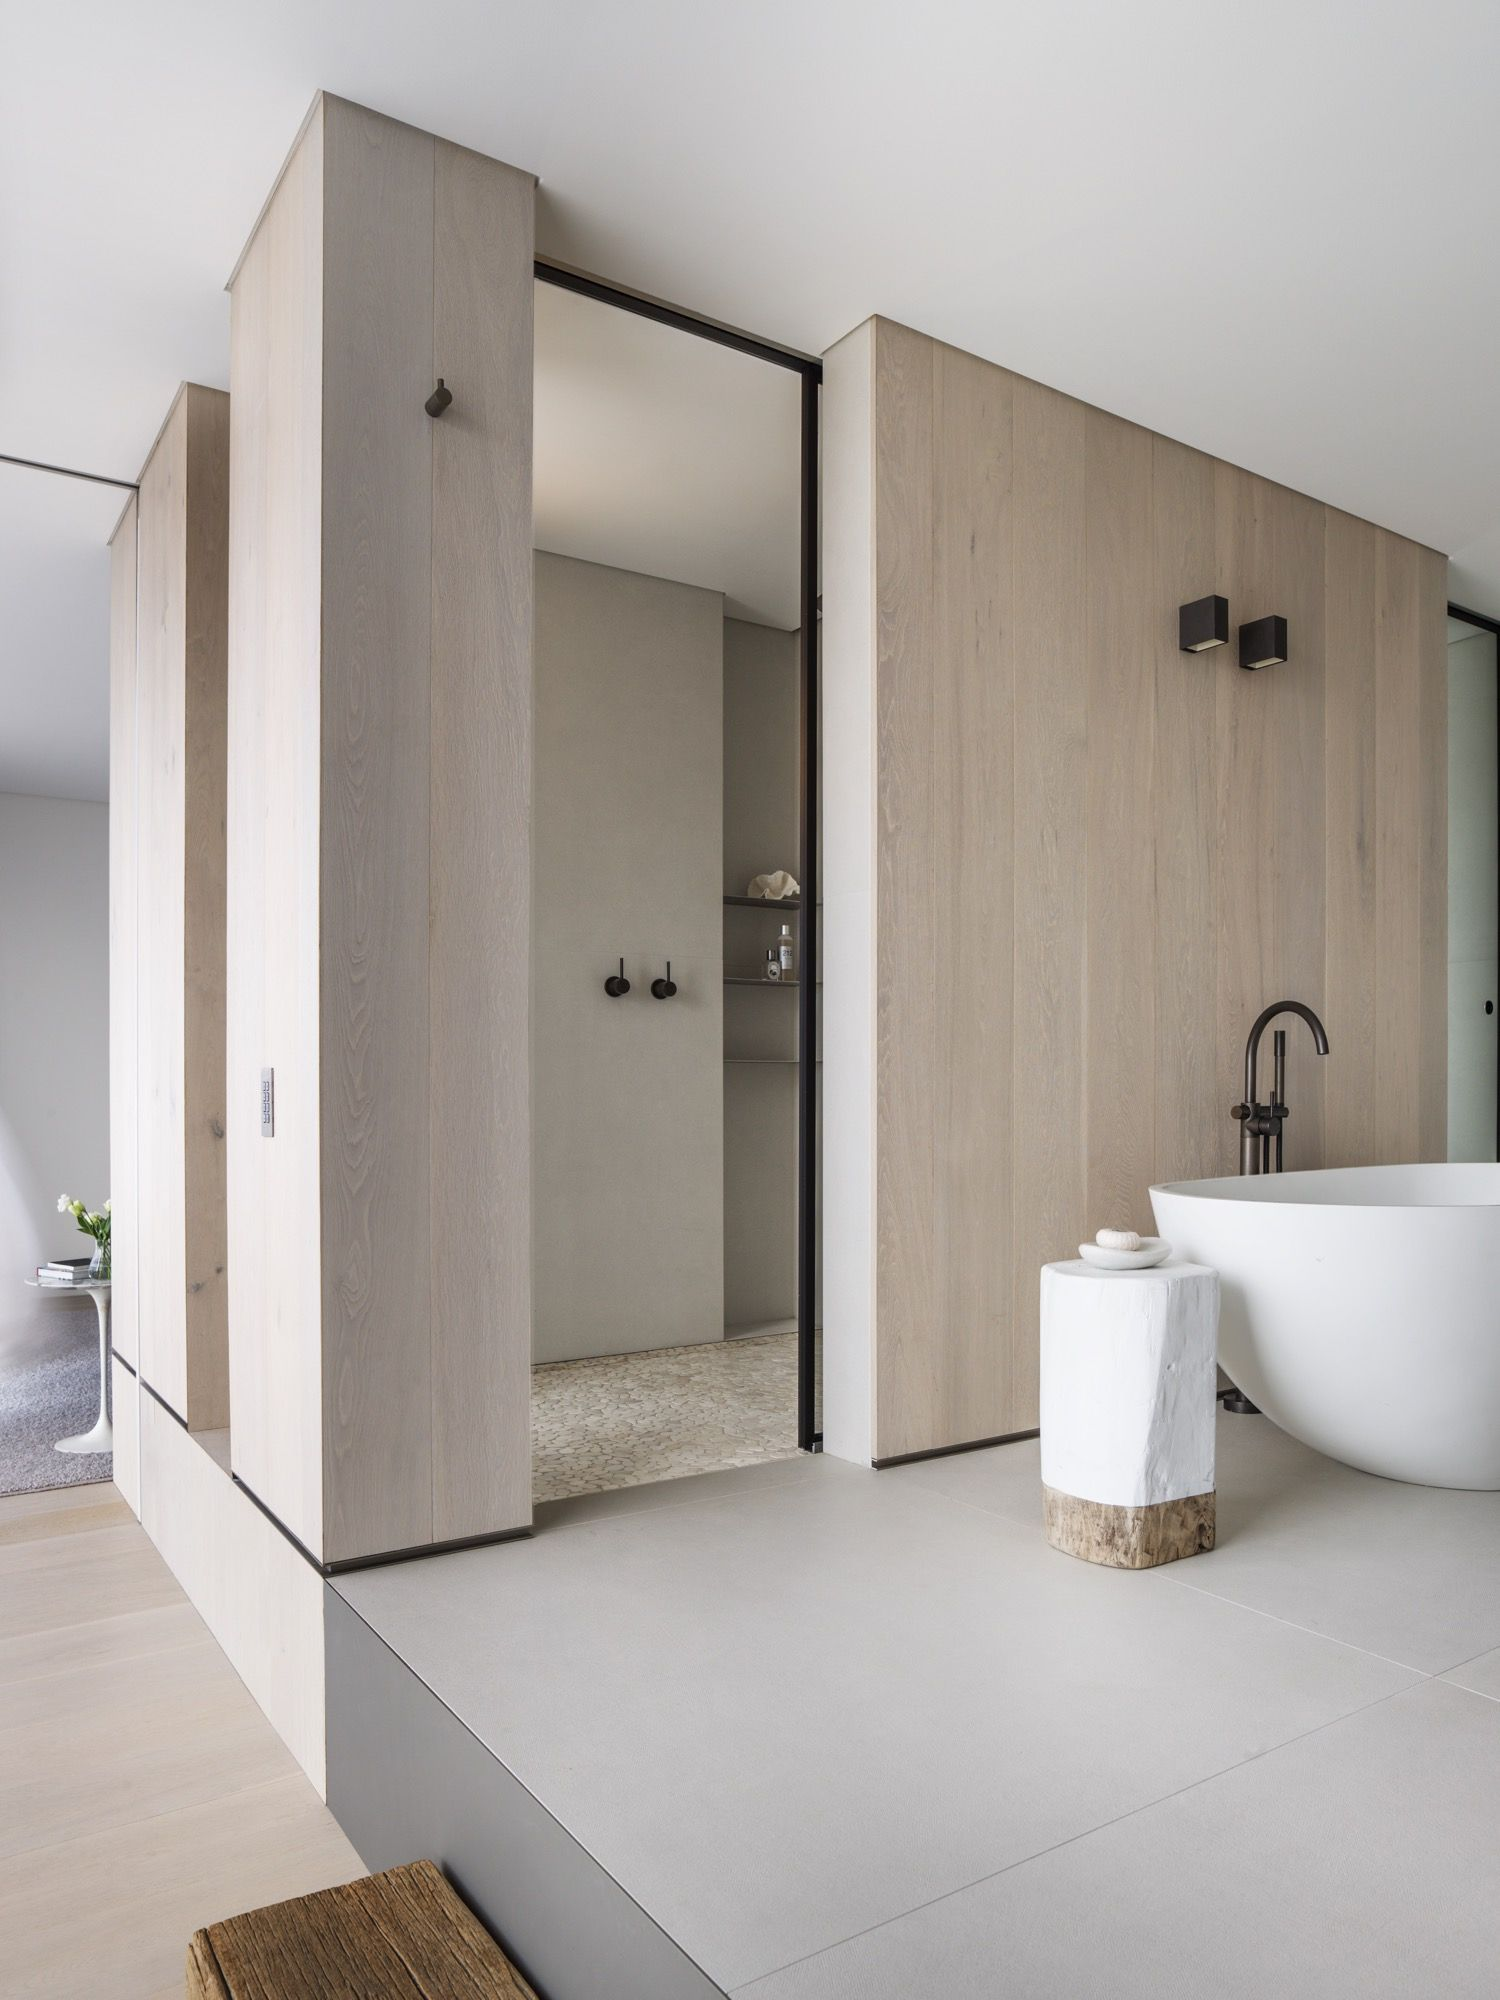 Sydney Based Interior Design Firm Lawless U0026 Meyerson Specialise In Creating  Tactical, Layered, Luxurious Spaces For Their Harbourside Clients.